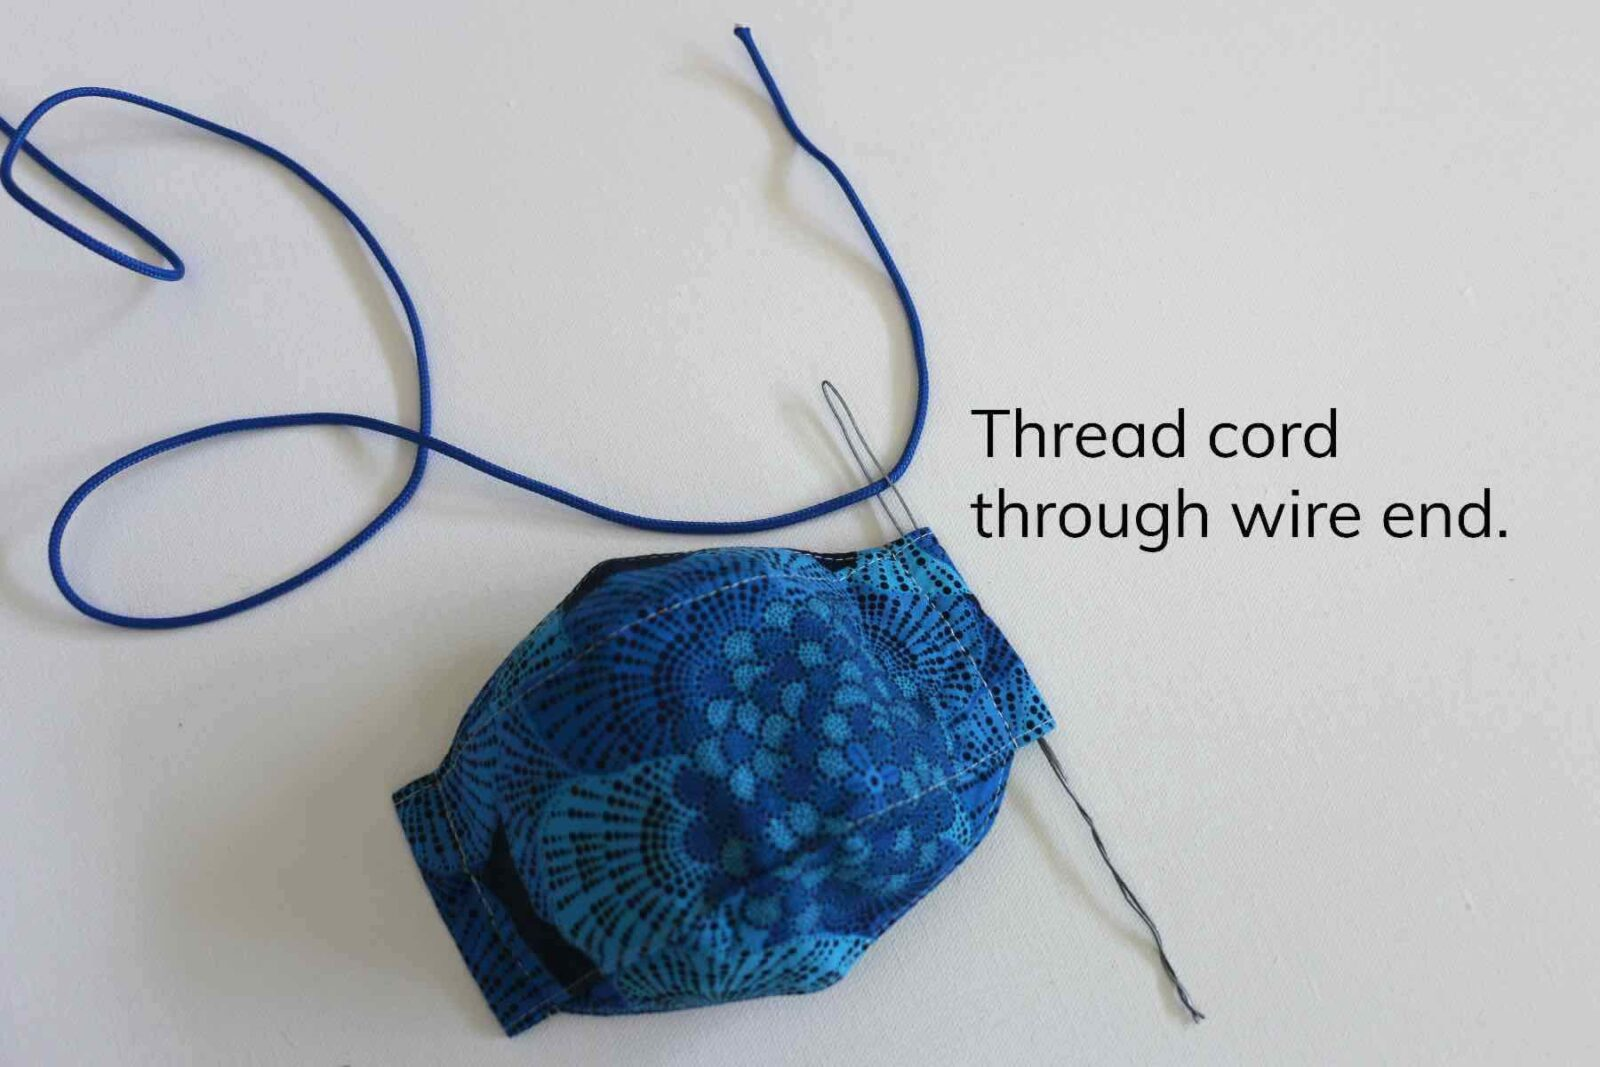 3. Thread cord through loop end of wire